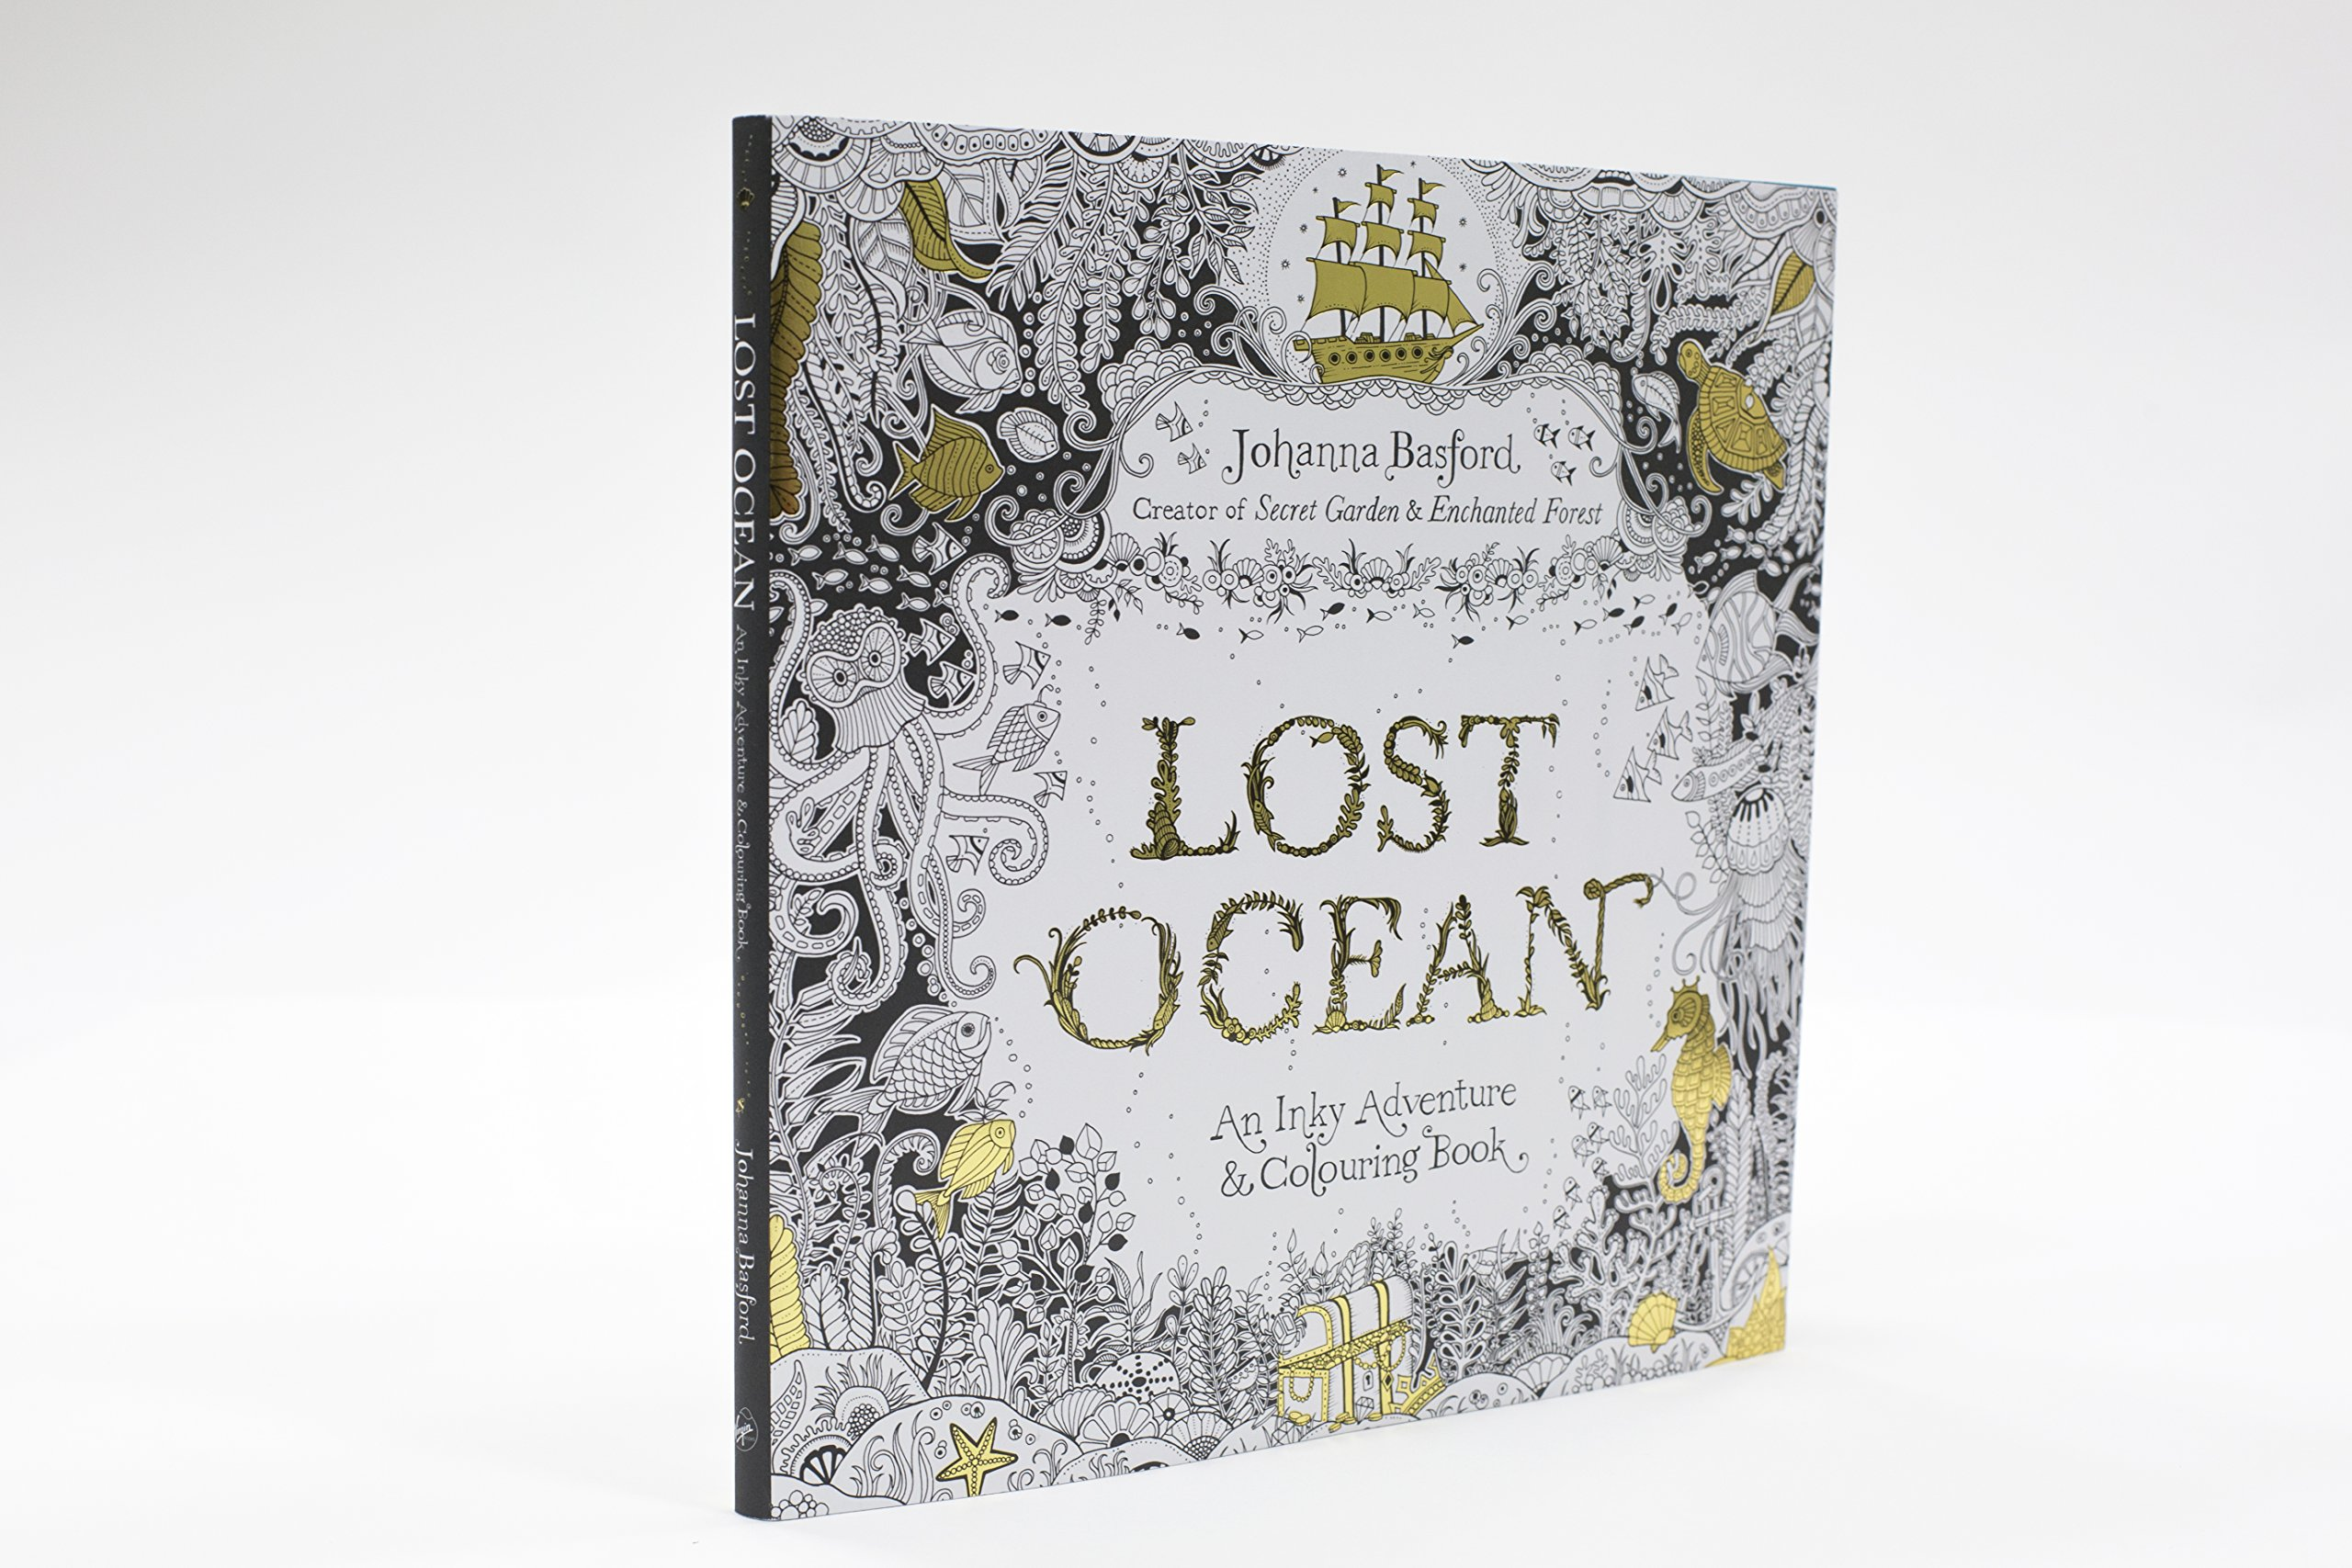 Lost Ocean An Inky Adventure Colouring Book Amazoncouk Johanna Basford 9780753557150 Books